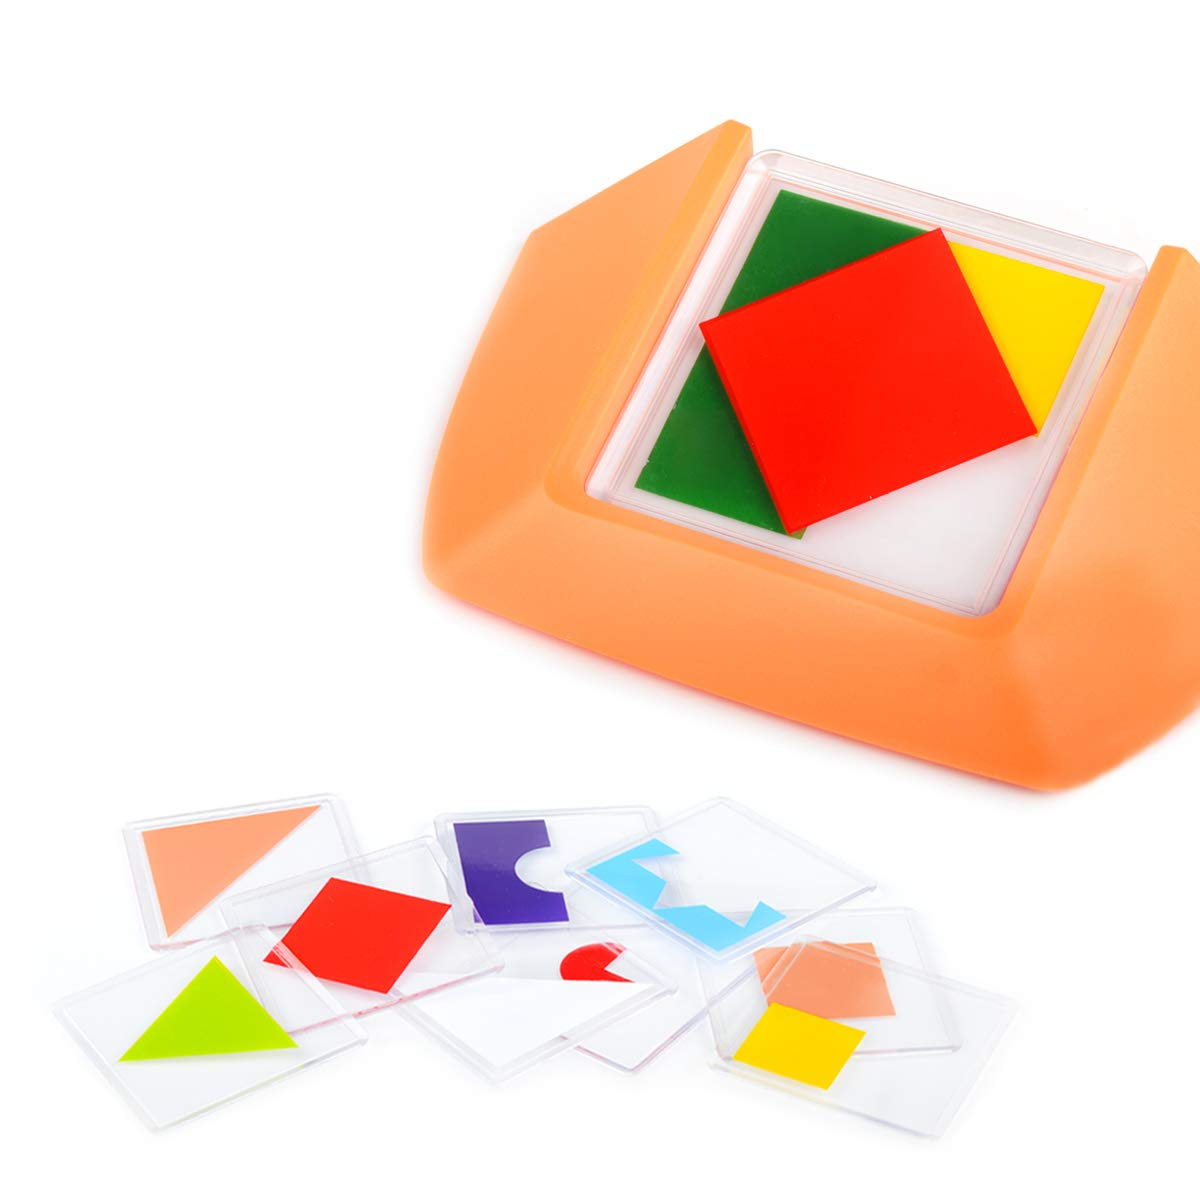 Color and Shape Puzzle Creative Pattern Logic Game Learn Logical Reasoning Skill Through Fun Gameplay for Age 3 to Adult by YHZAN